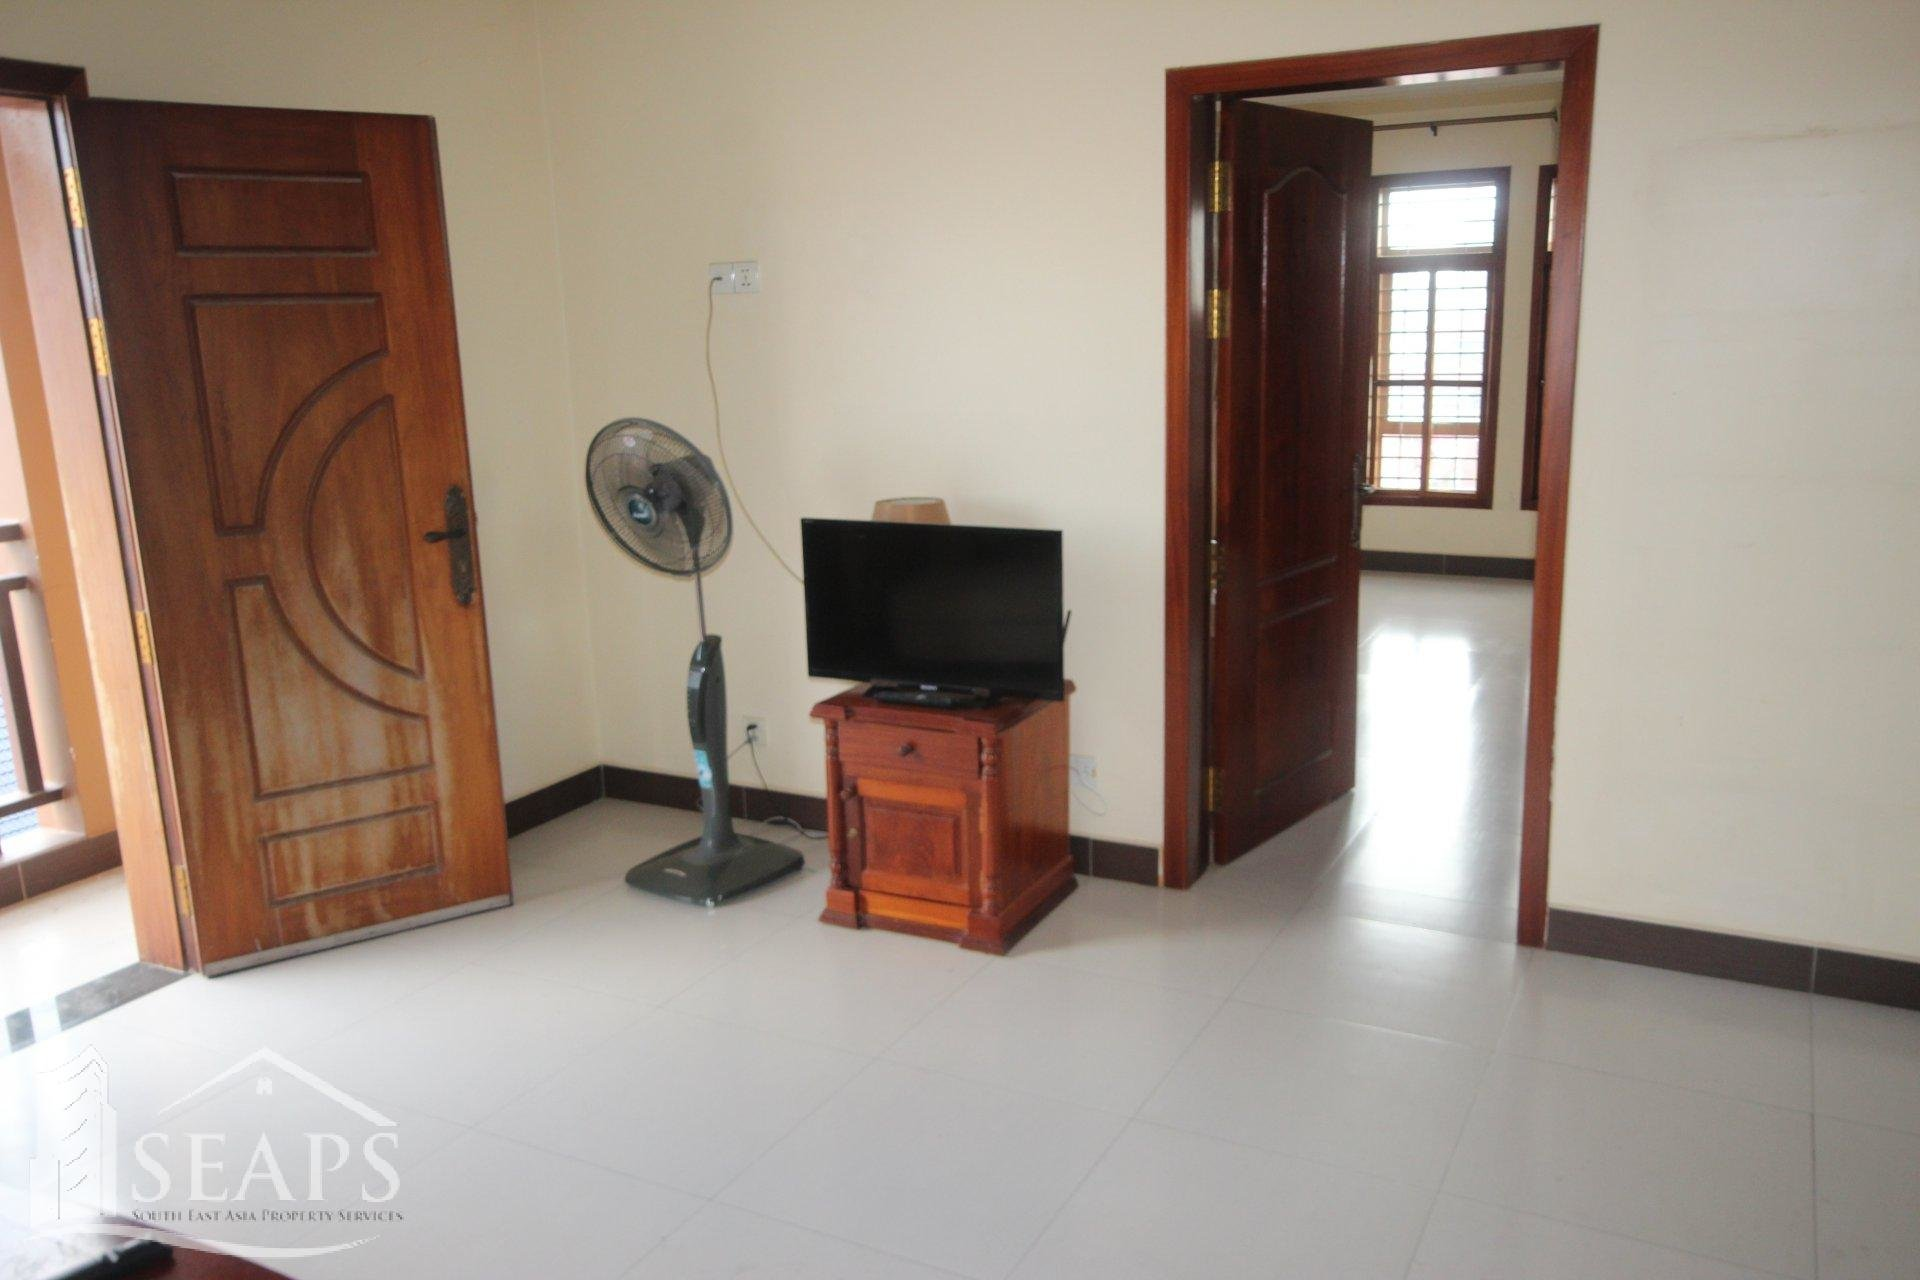 SPACIOUS 2 BEDROOM AND 2 BATHROOM APARTMENT